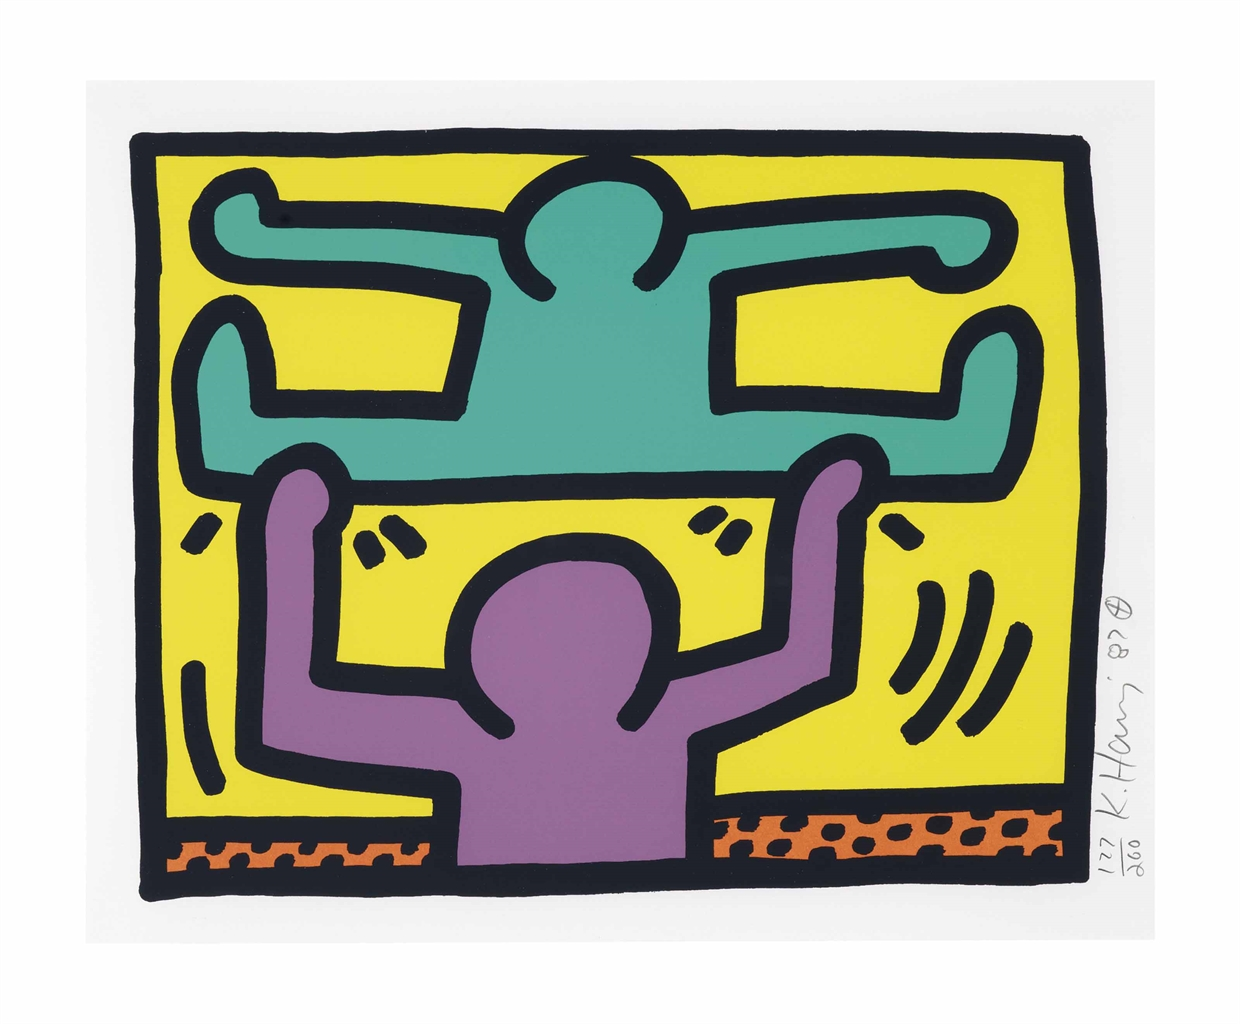 Keith Haring-Pop Shop I: one plate-1987